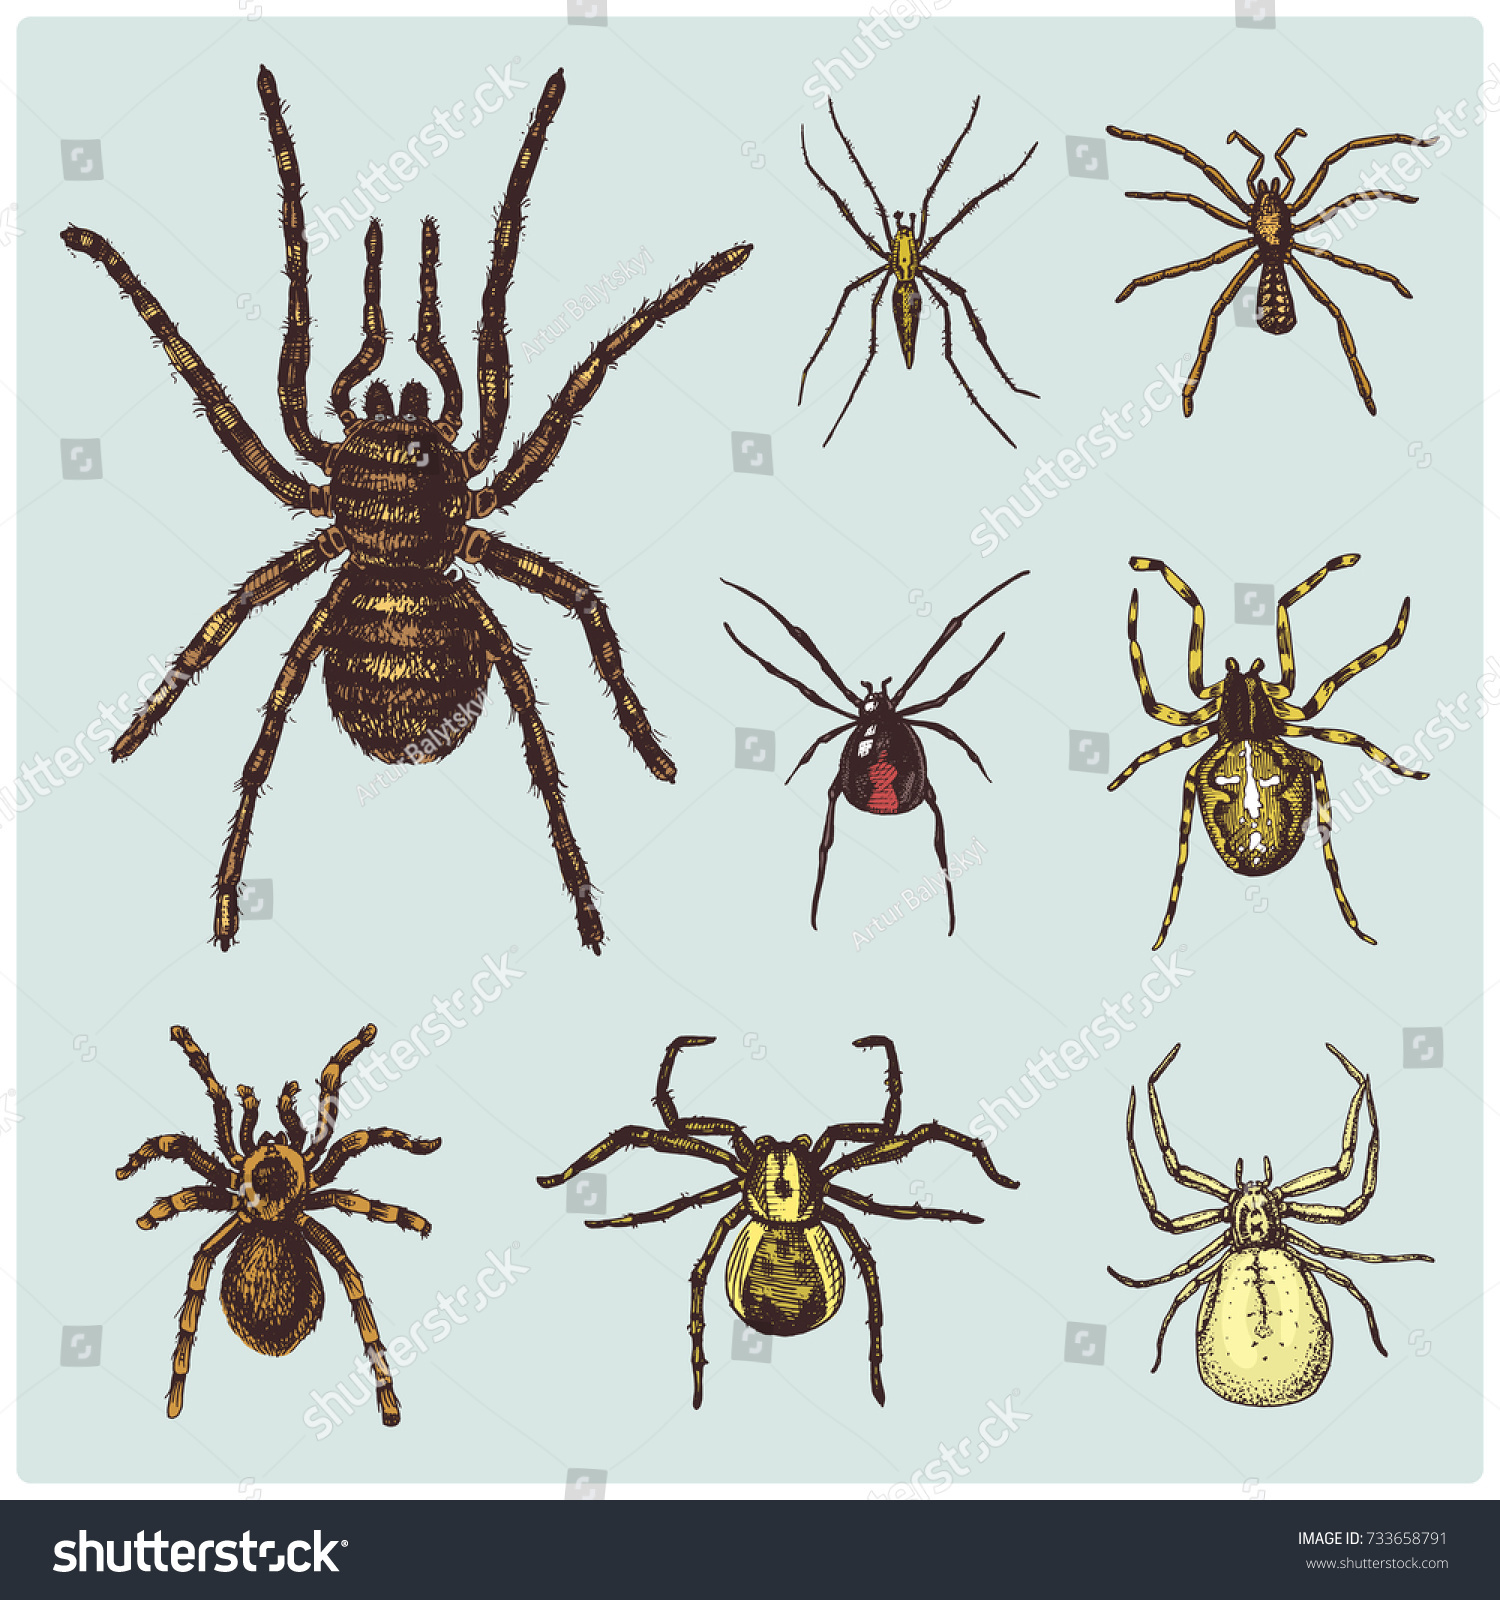 Spider Arachnid Species Most Dangerous Insects Stock Photo (Photo ...